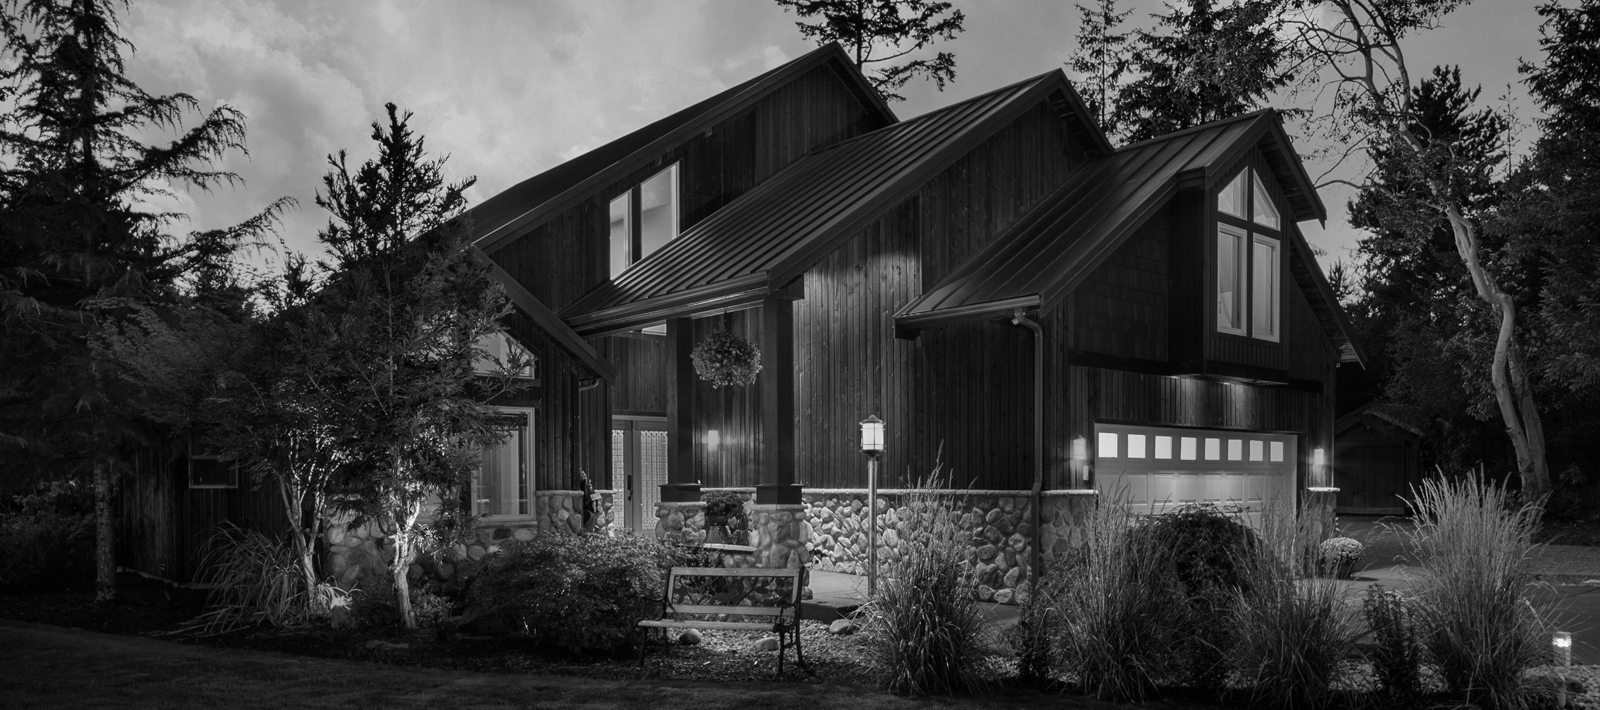 Old style wooden house(B & W)